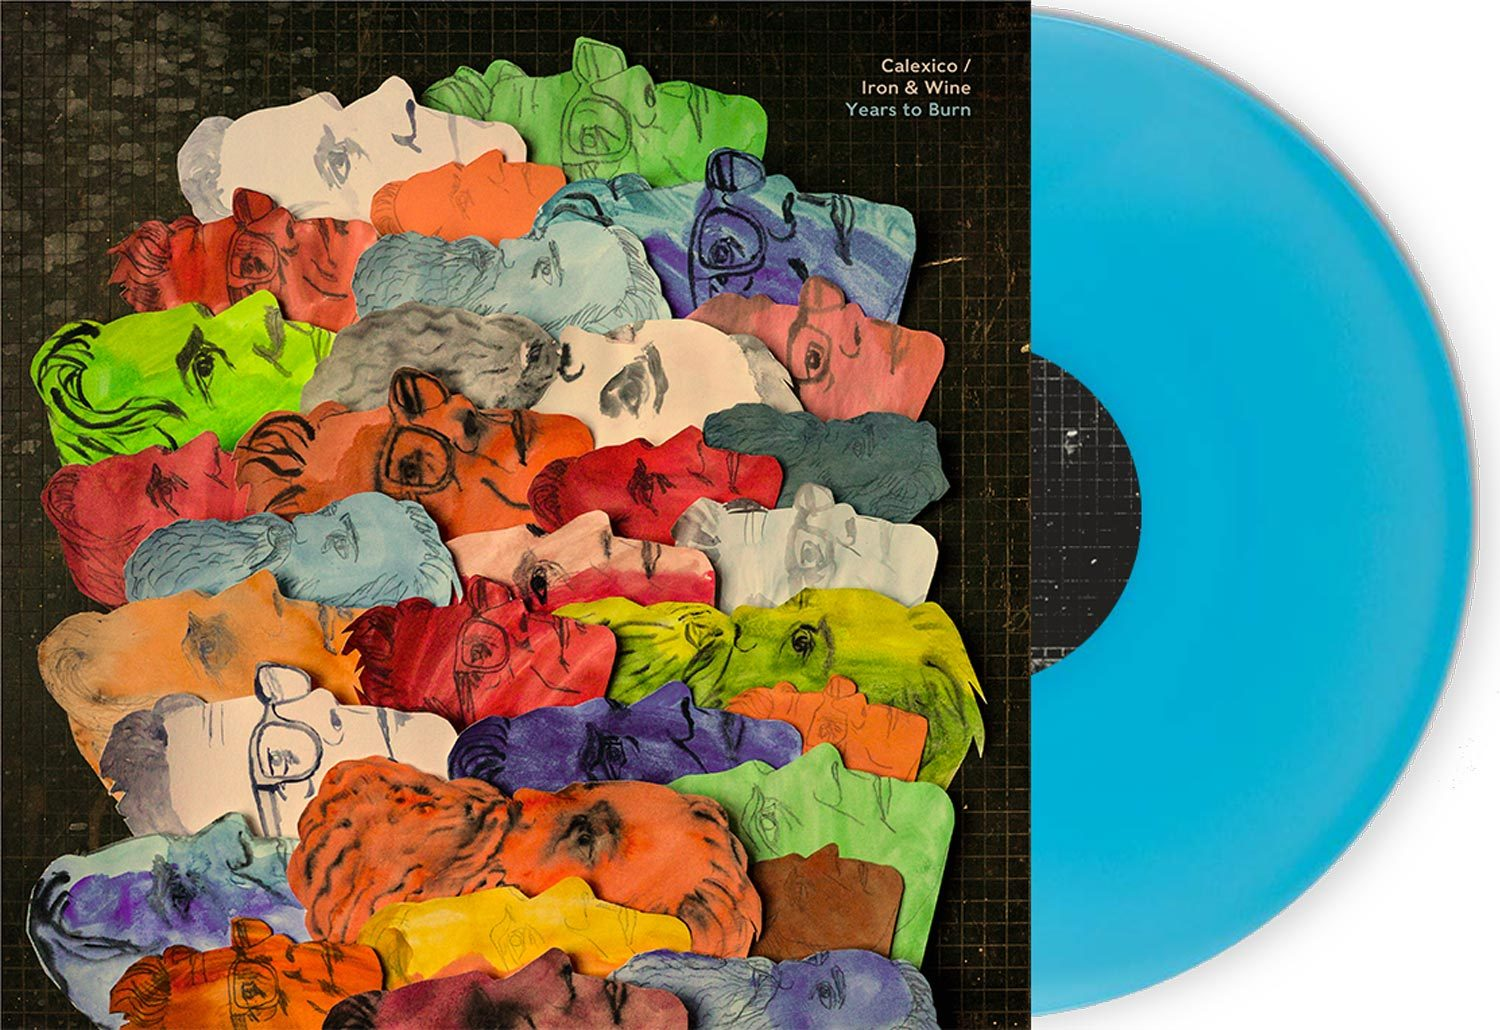 Calexico and Iron & Wine (PRE-ORDER) Years to Burn Limited Turquoise LP ltd.LP- Bingo Merch Official Merchandise Shop Official